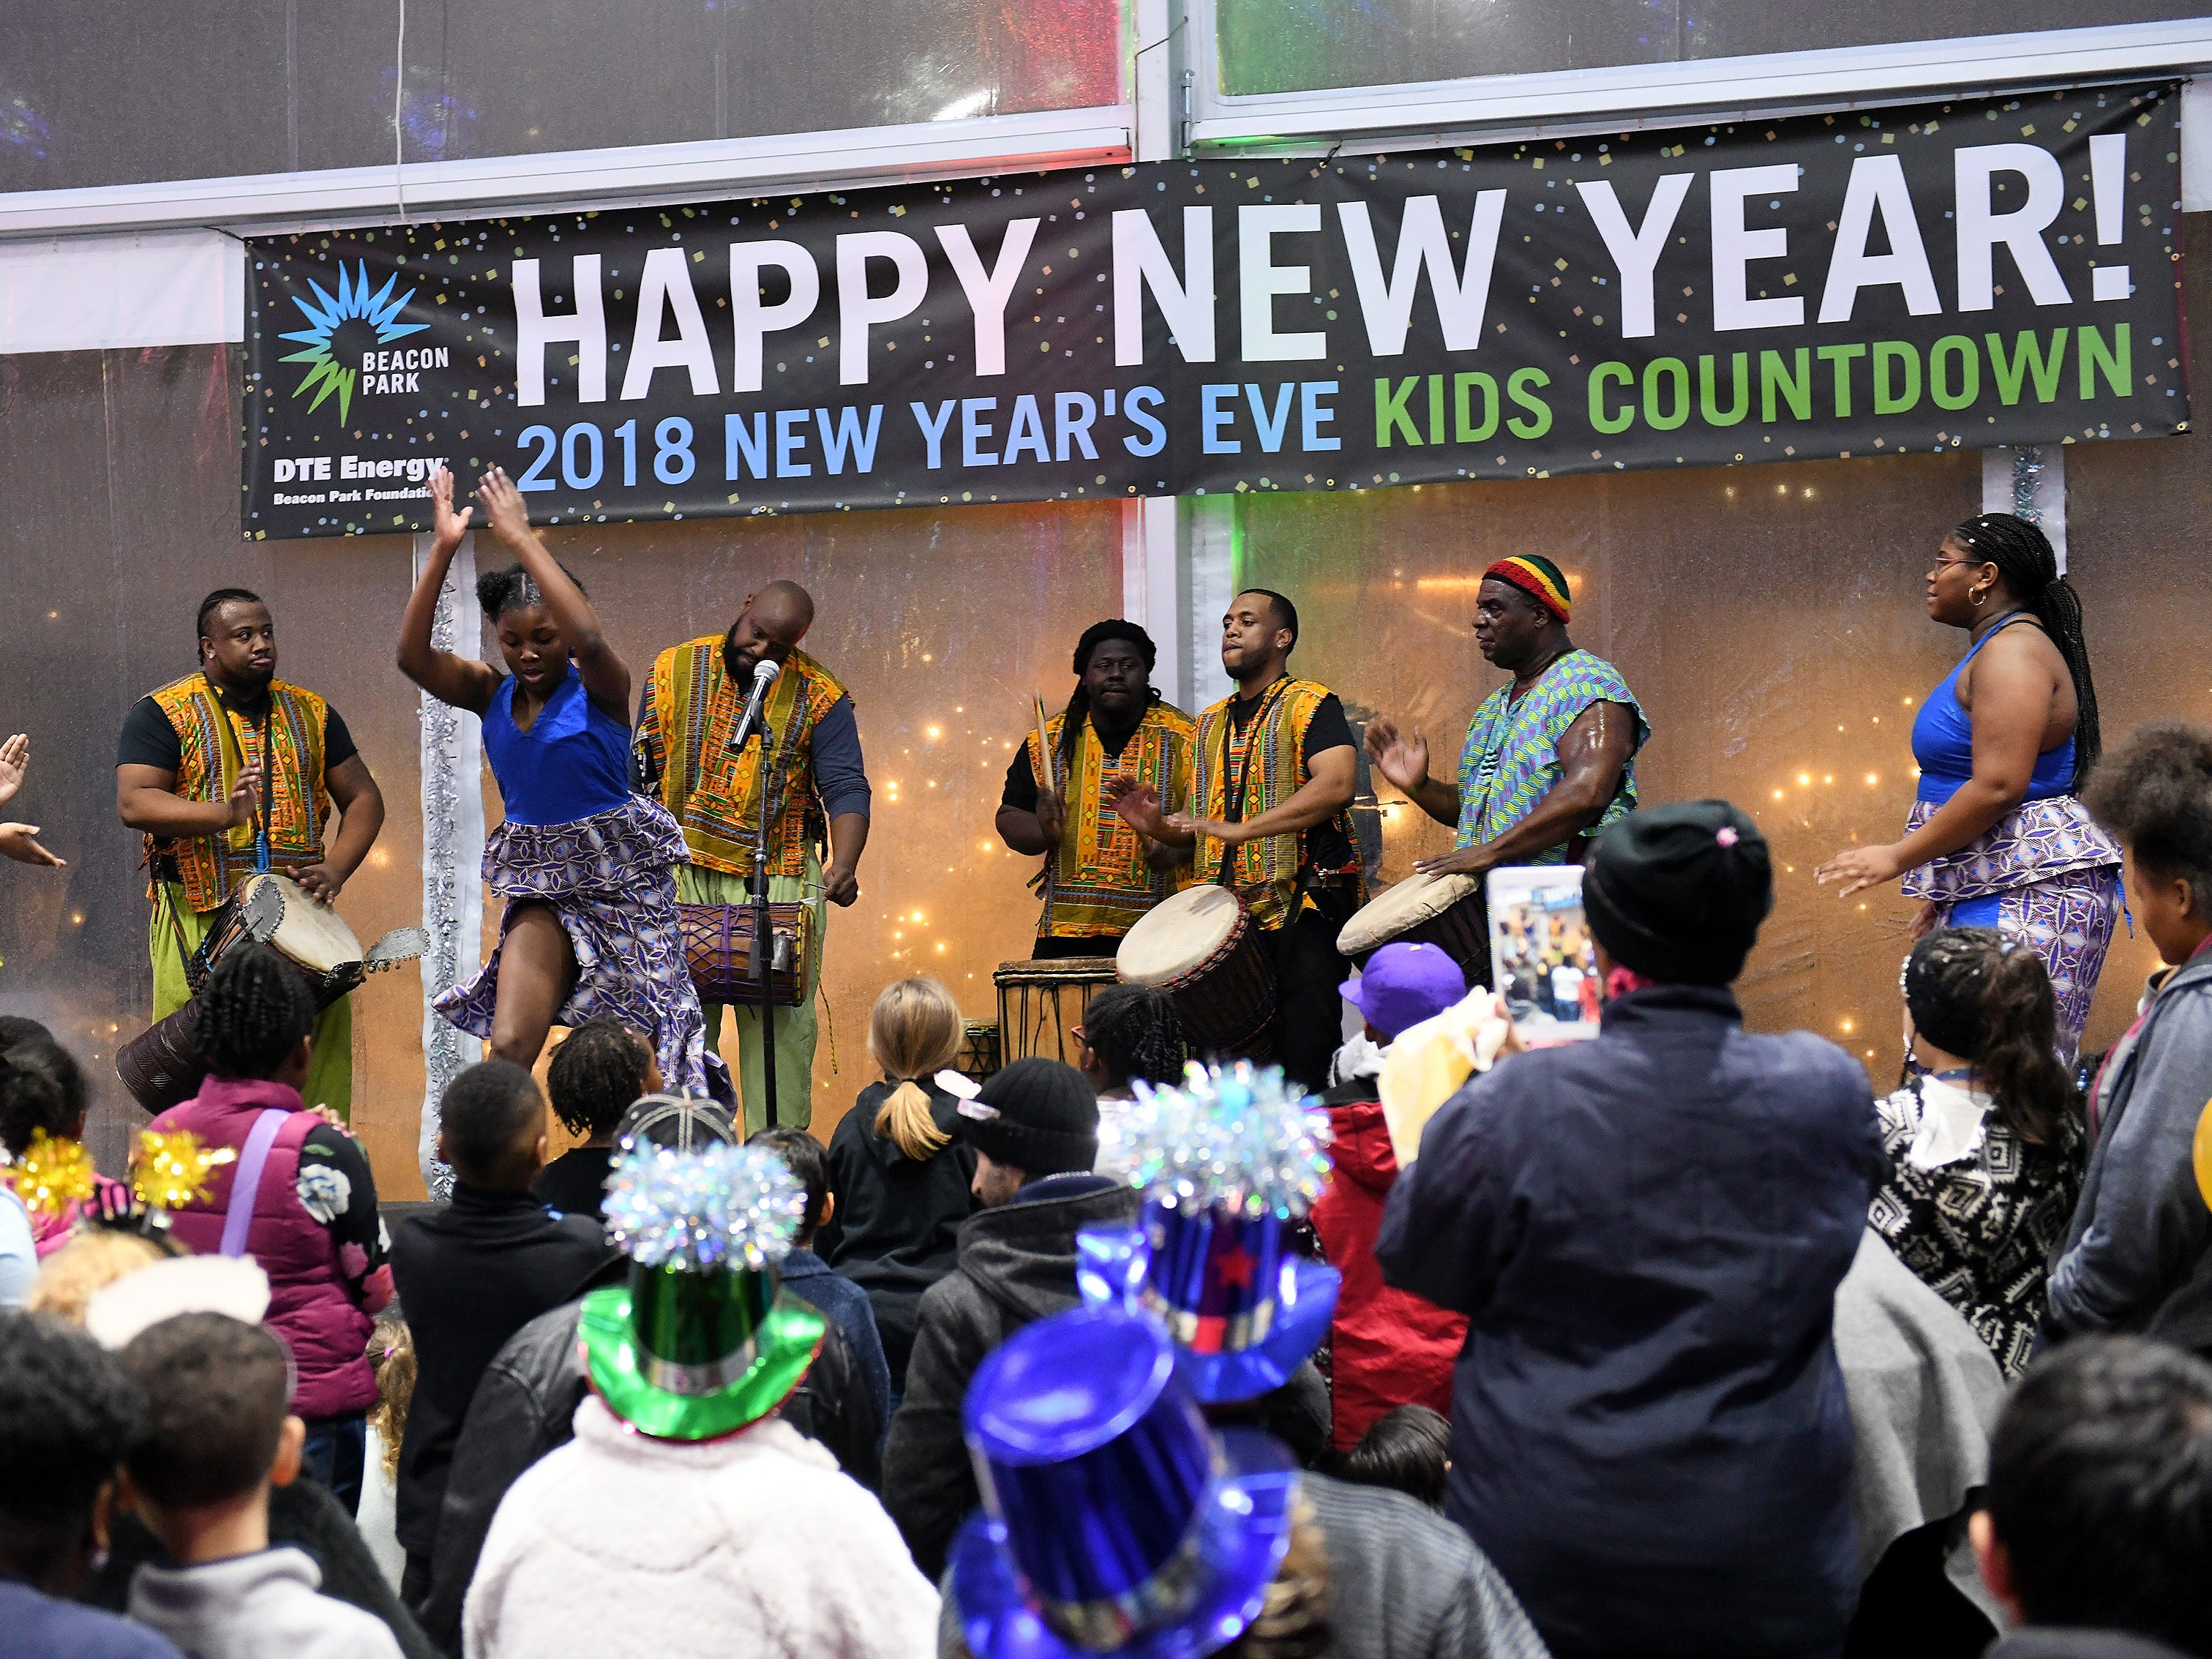 The Nanou Djiapo African drum and dance group performs at the New Year's Eve Kids Countdown at Beacon Park.